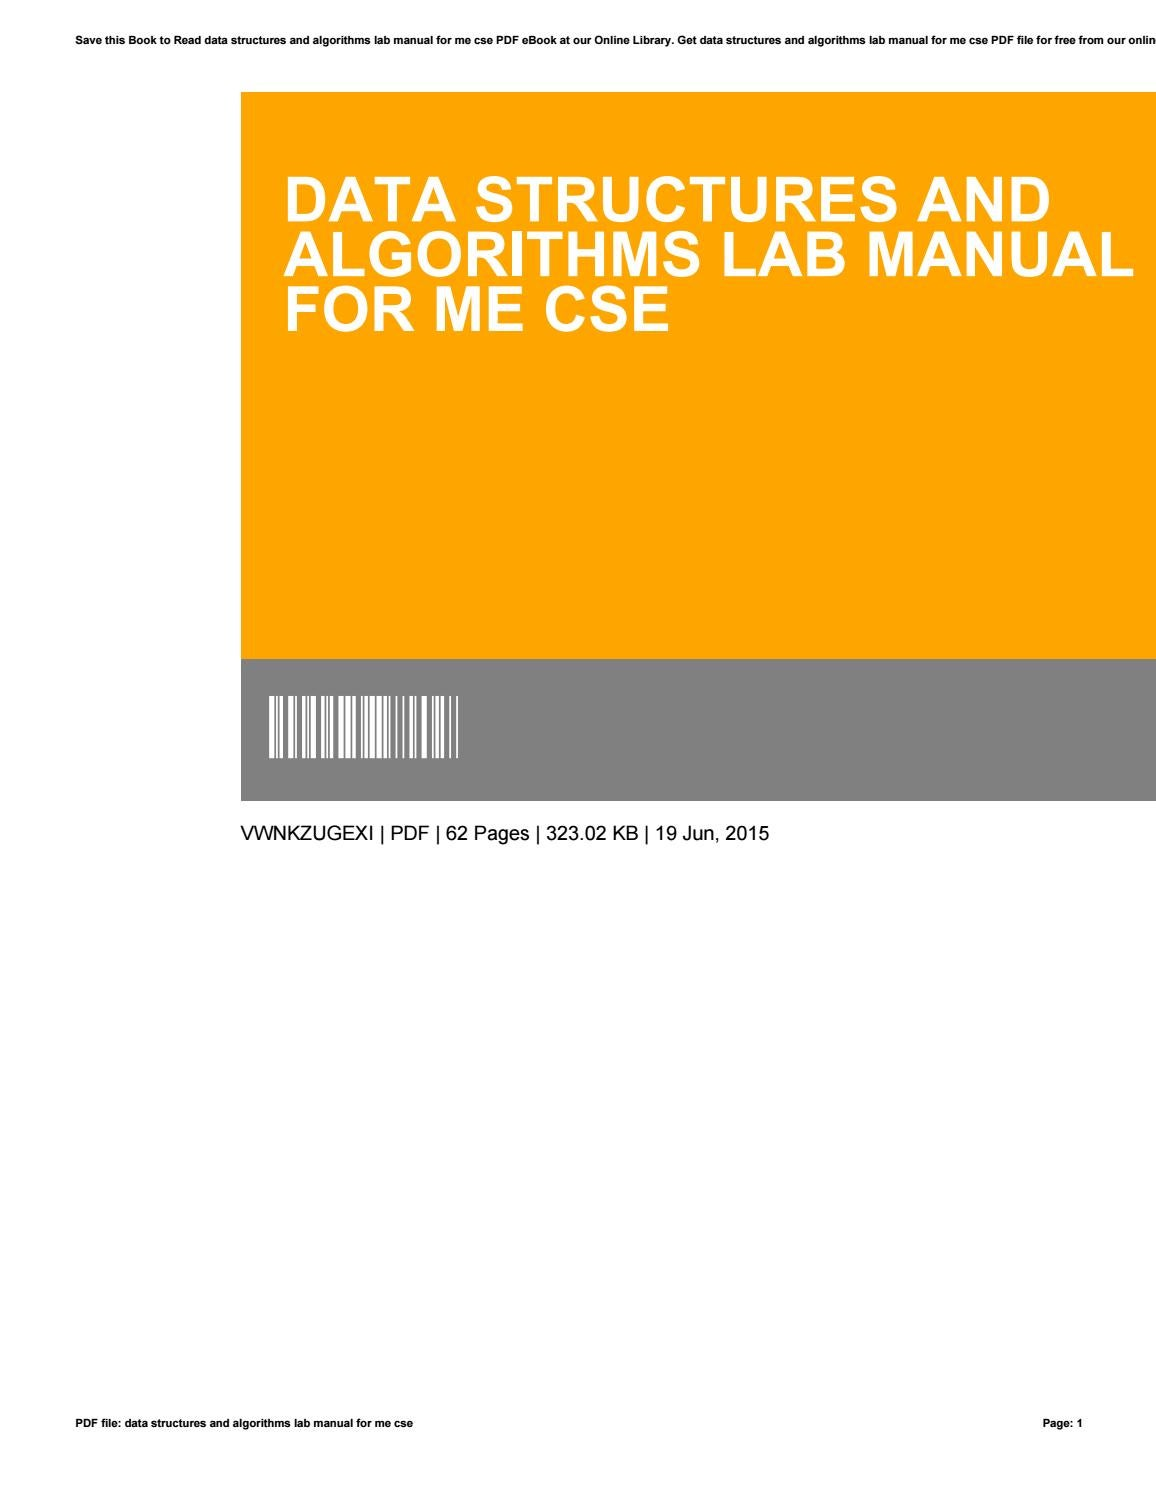 Data structures and algorithms lab manual for me cse by OcieWhite4023 -  issuu